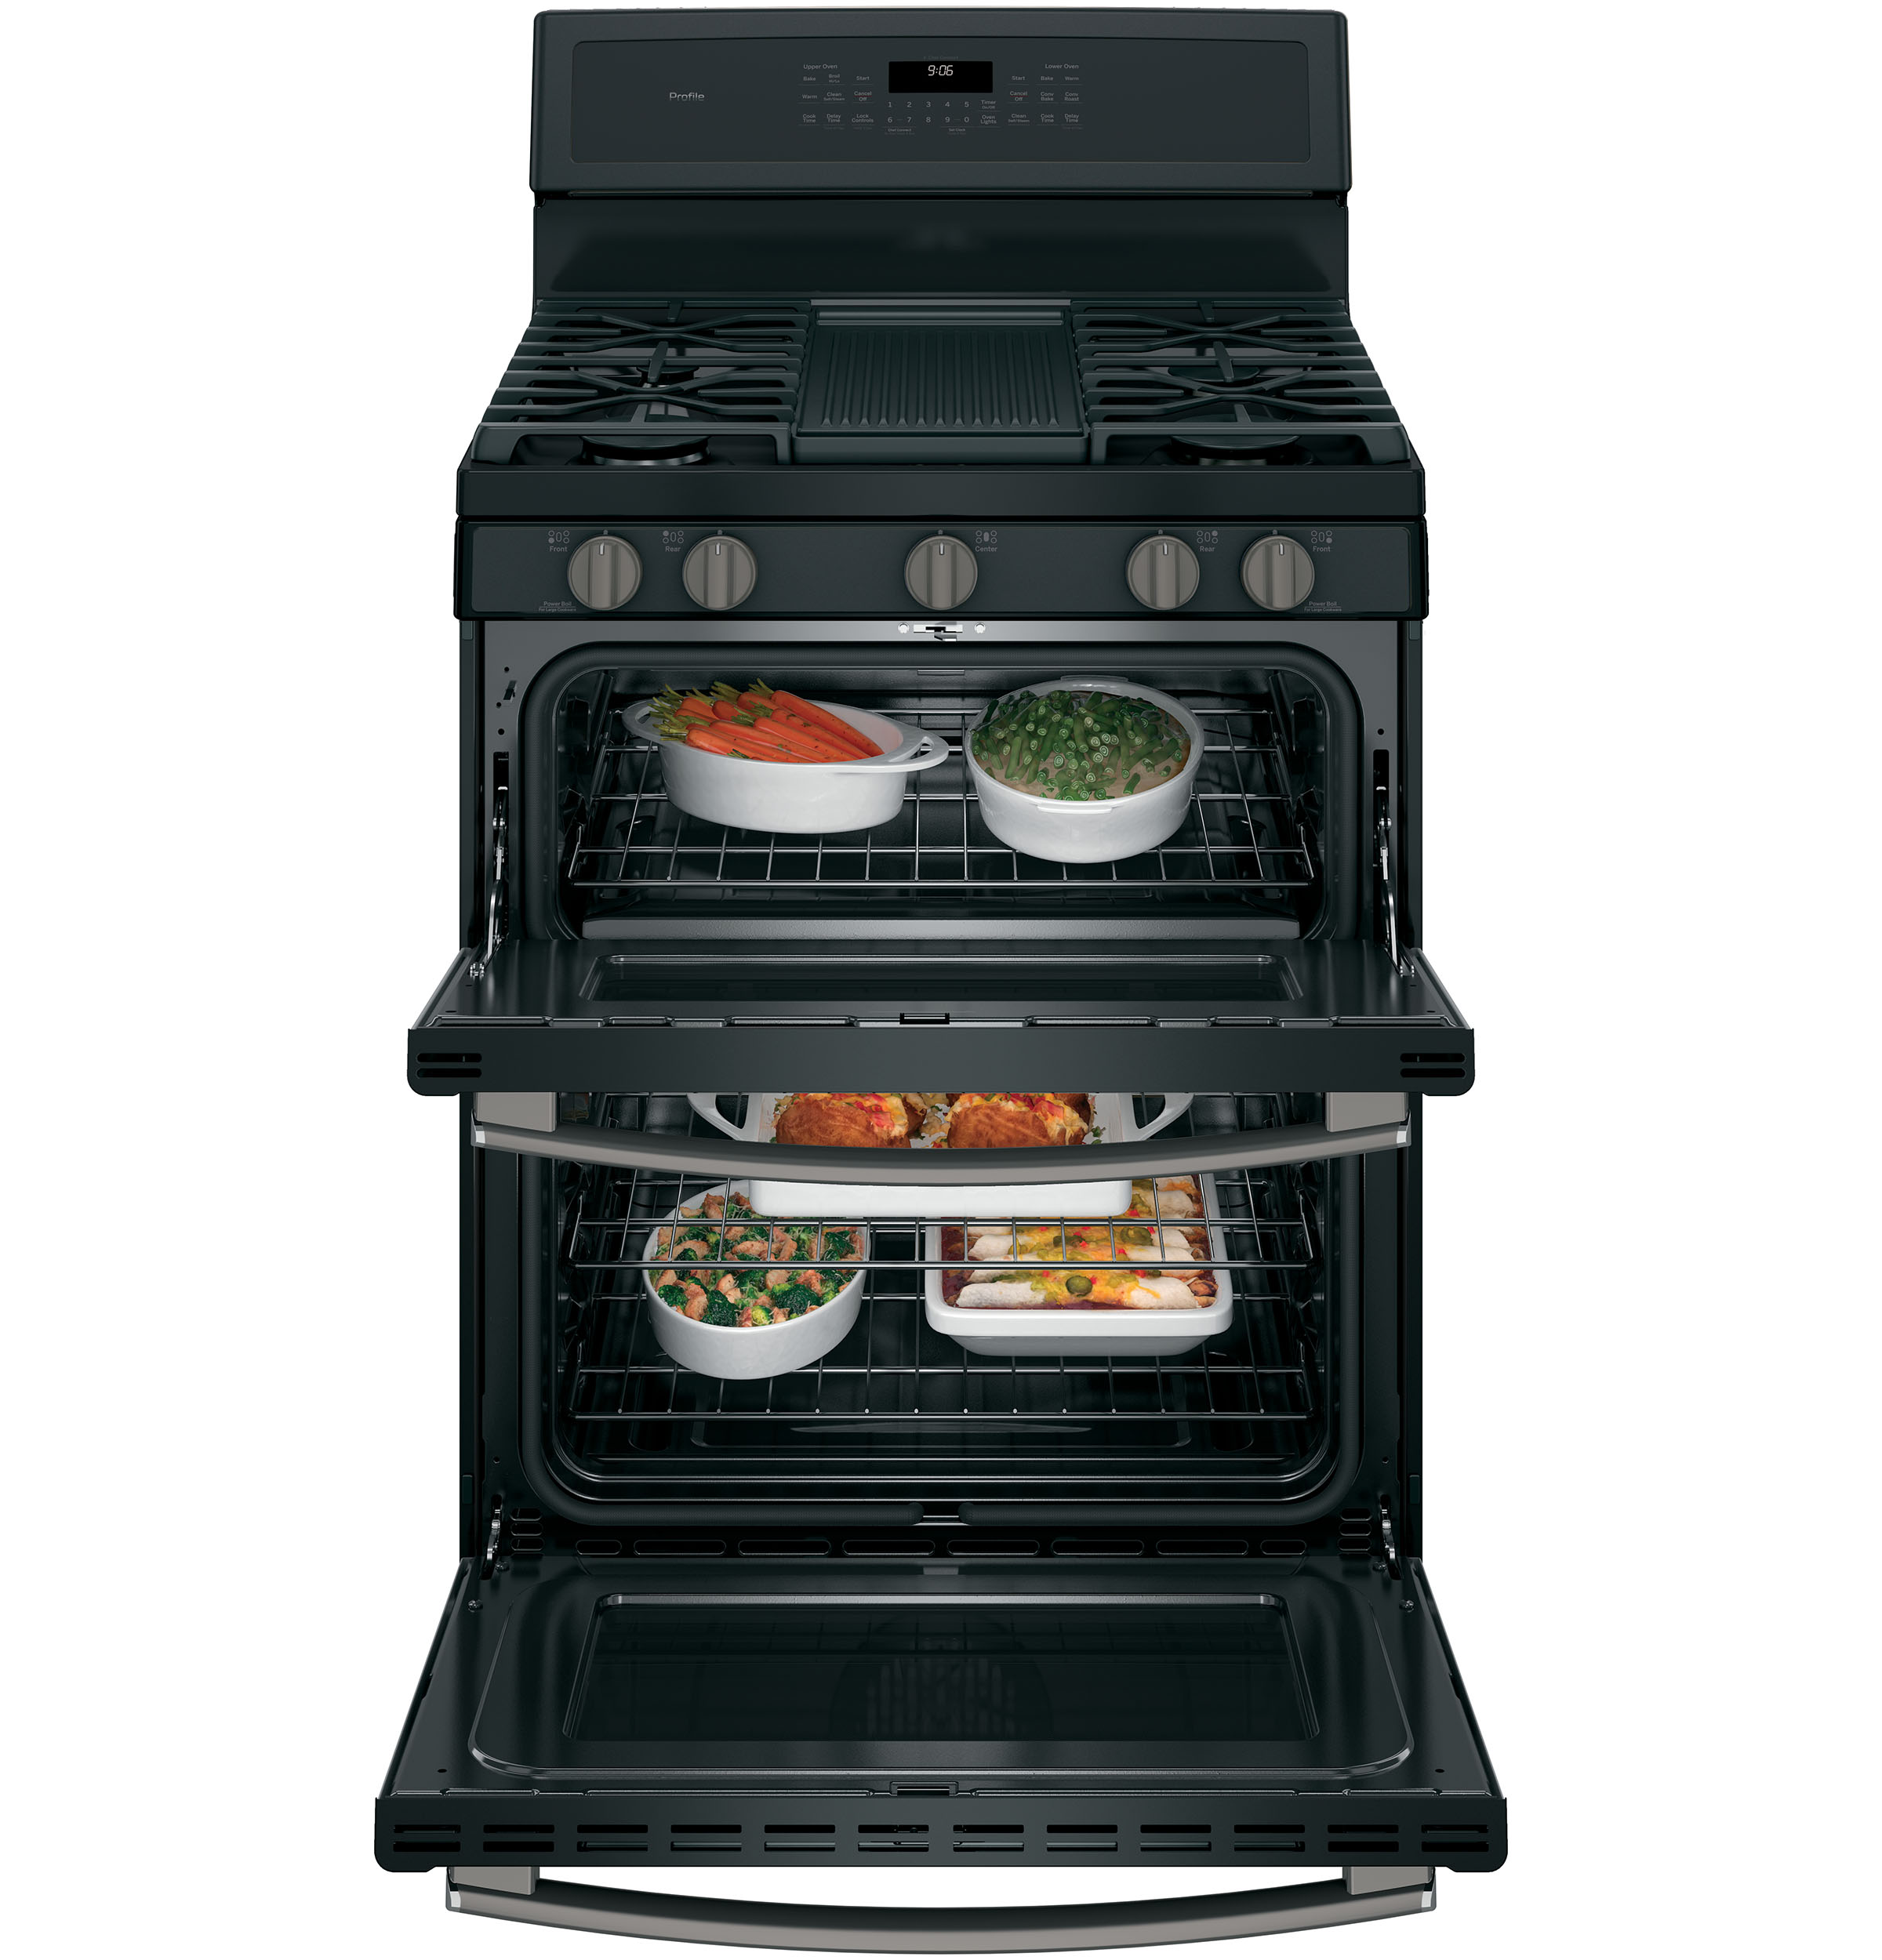 "Model: PGB960FEJDS | GE Profile GE Profile™ Series 30"" Free-Standing Gas Double Oven Convection Range"